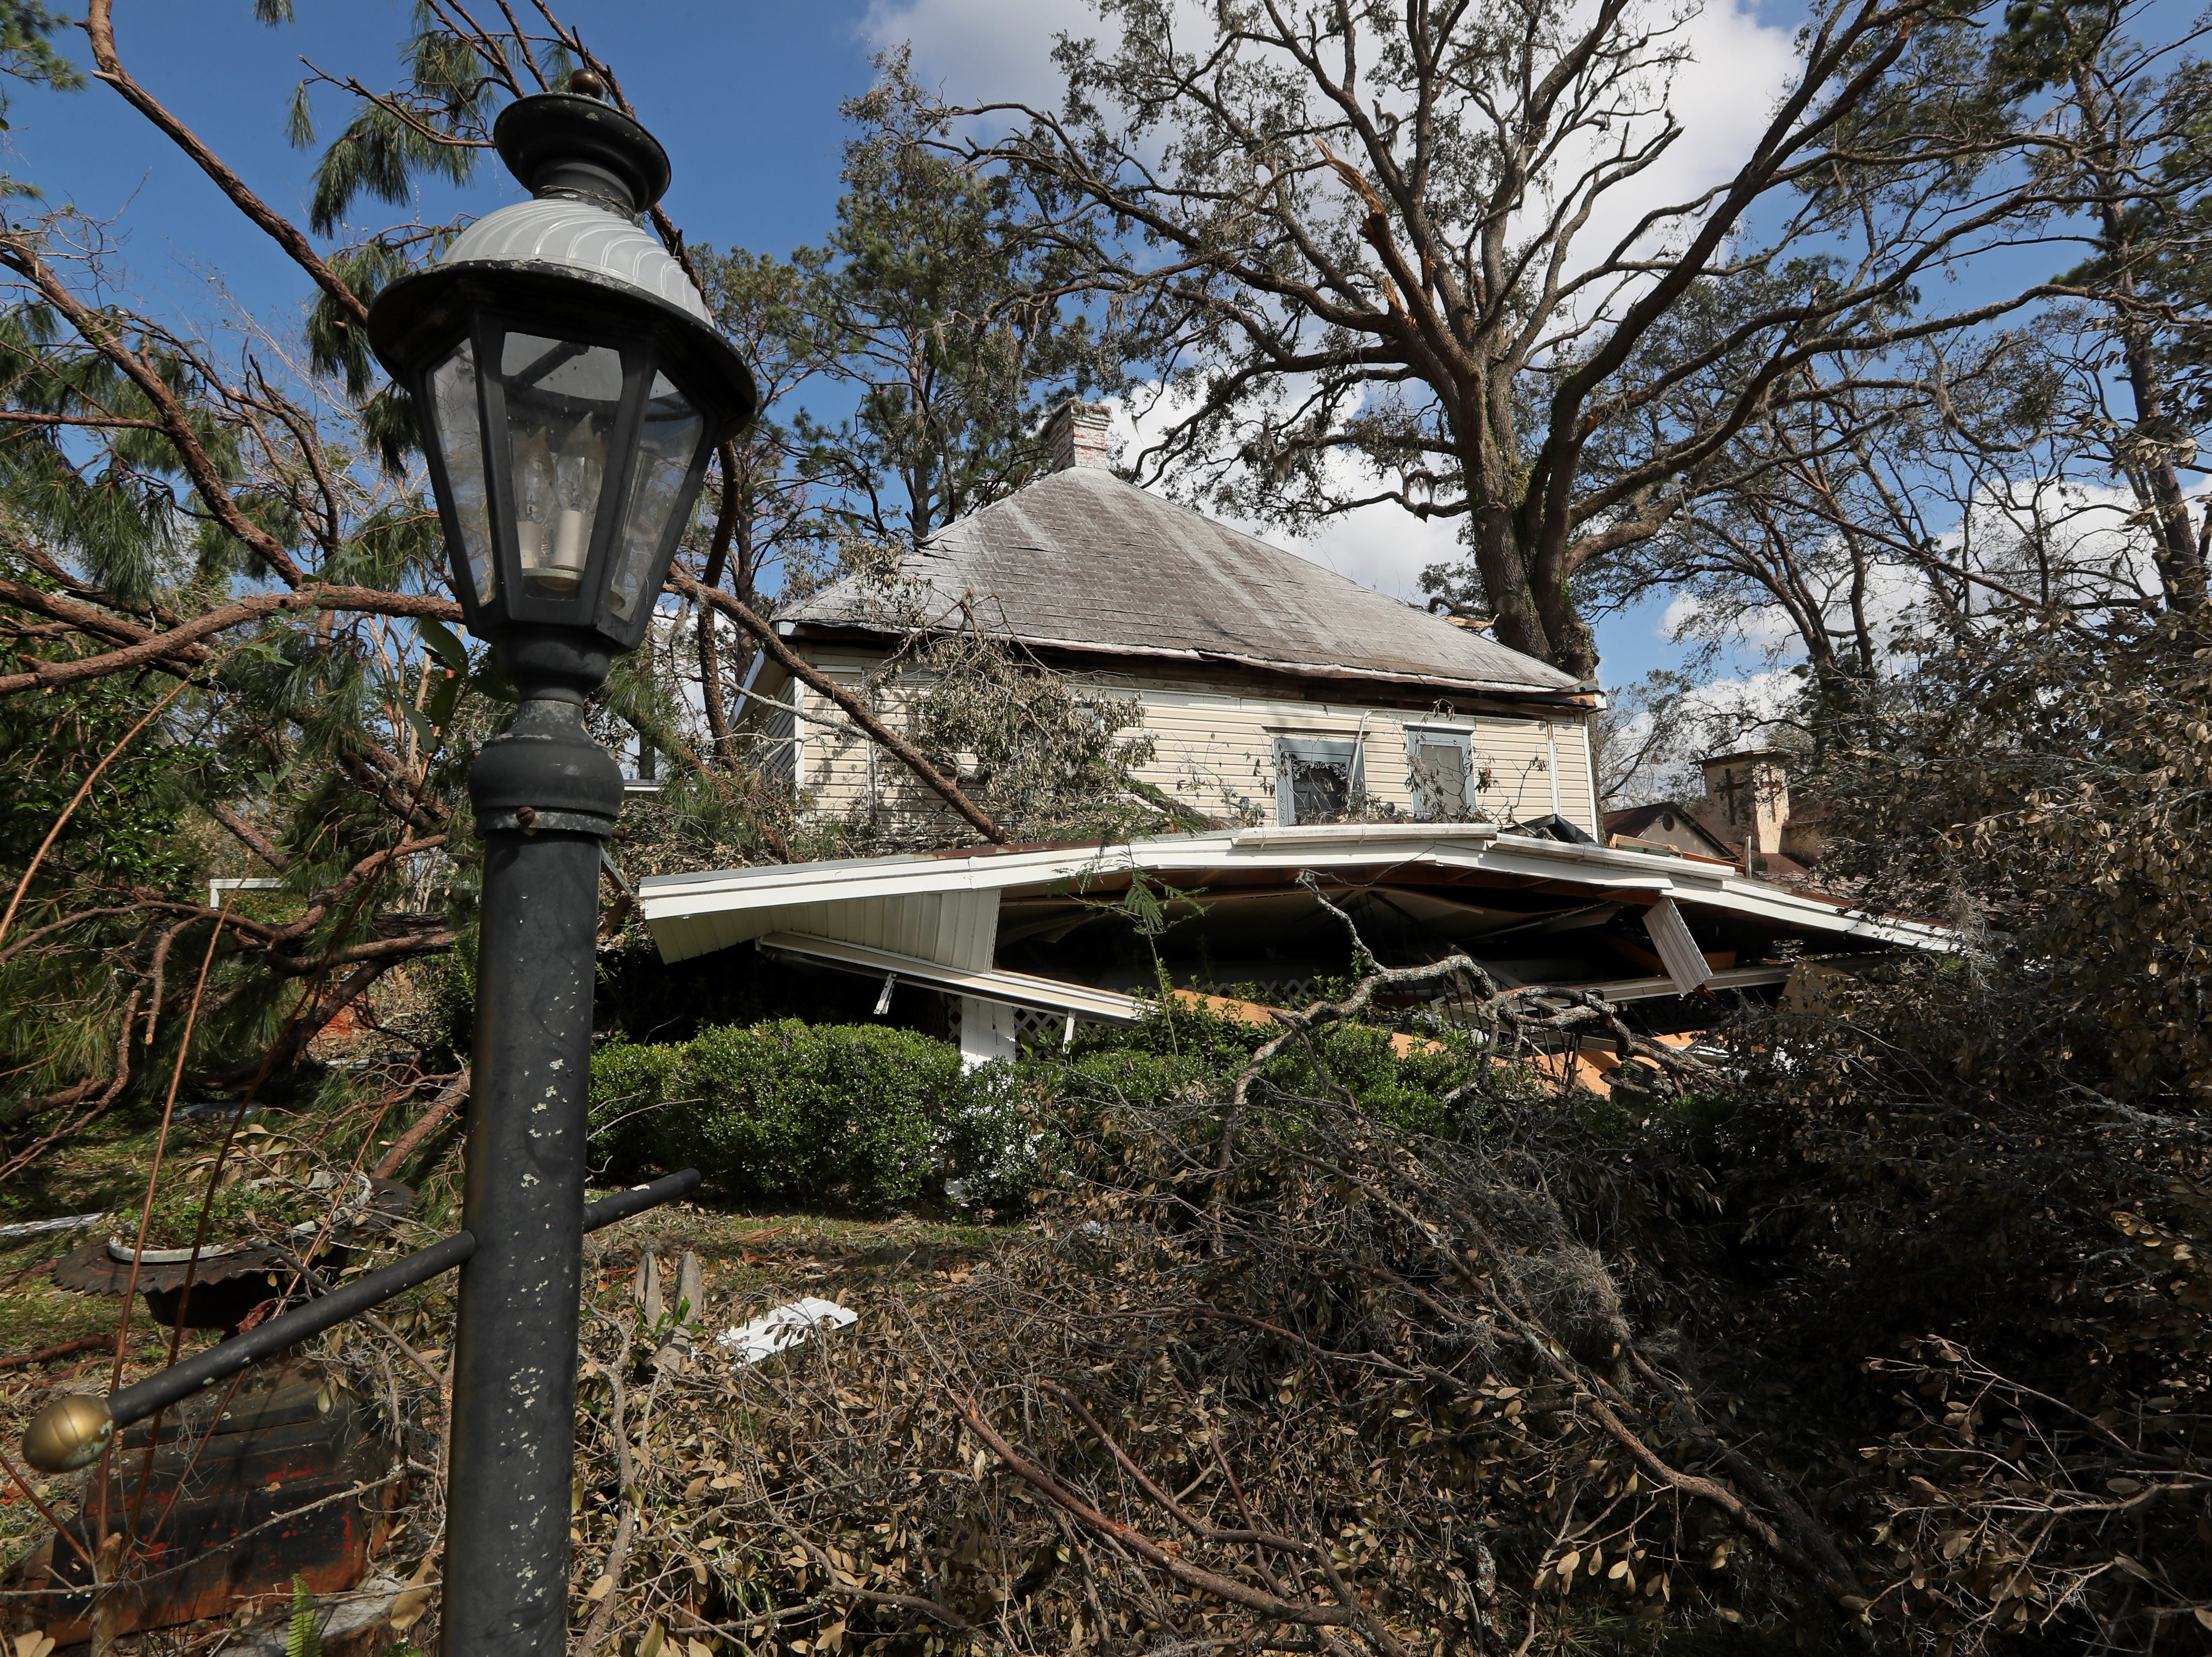 Billy Bassett King's Chattahoochee home where Hurricane Michael caused structural damage to the front of the house, crushing the front porch.